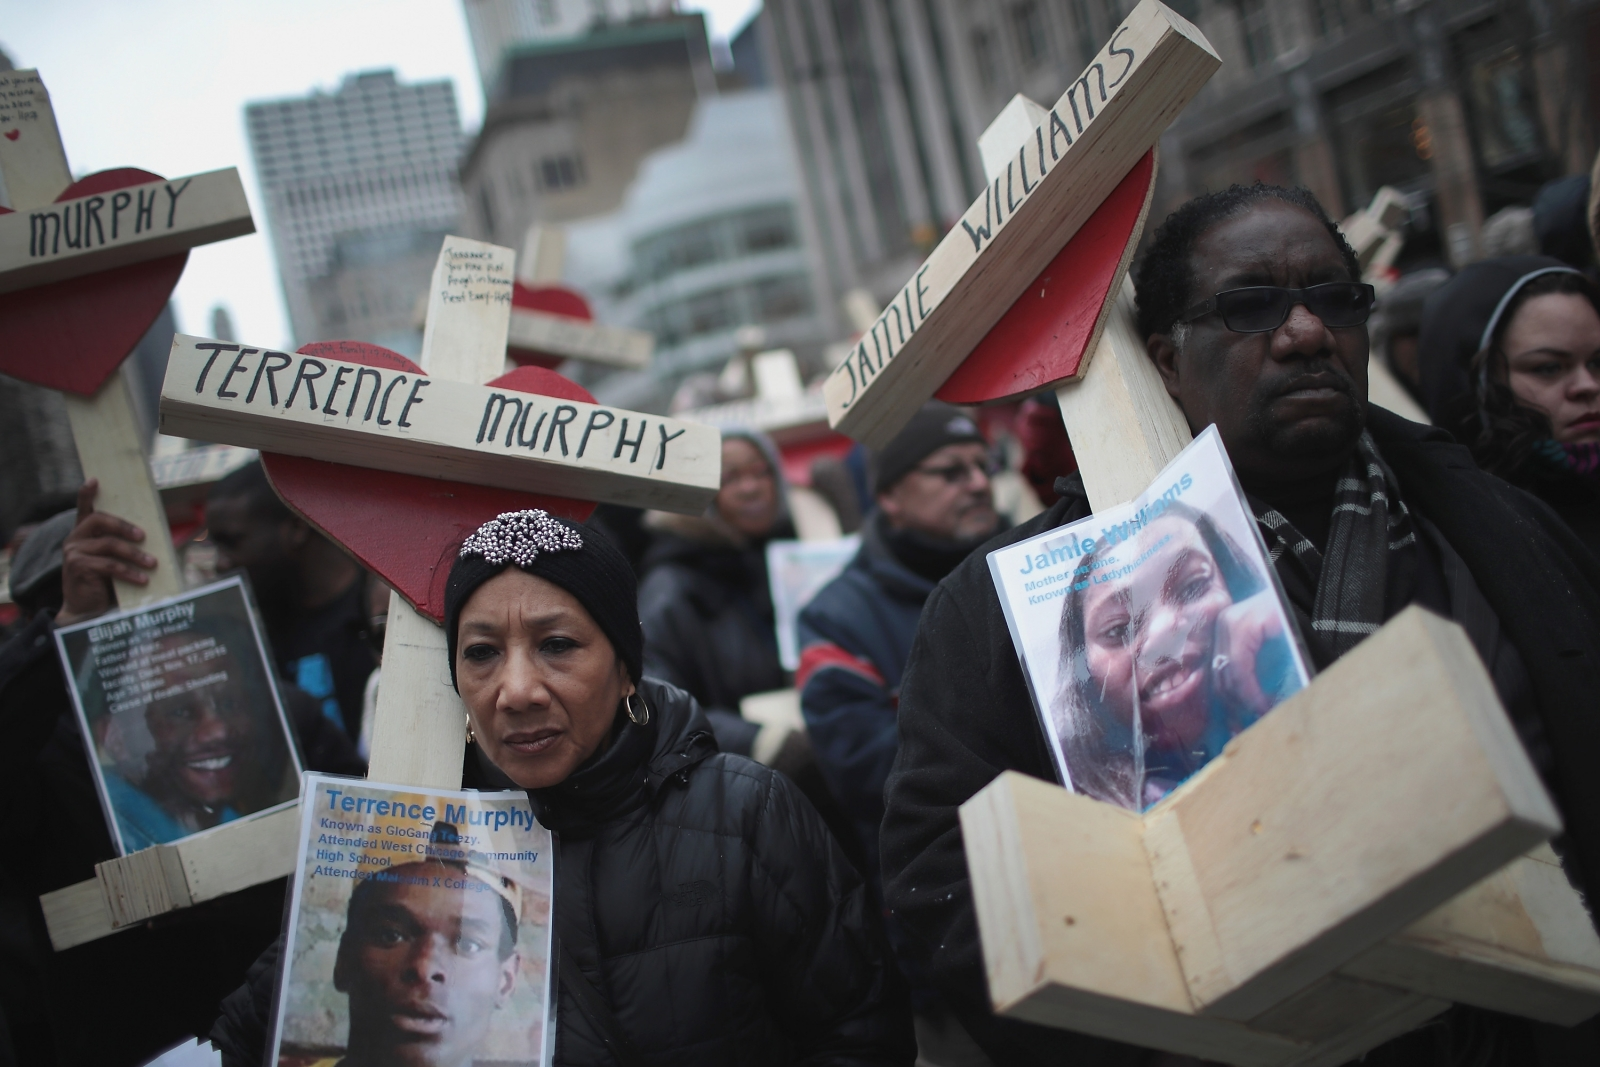 Chicago Police Investigate Off-Duty Officer's Fatal Shooting of Unarmed Man